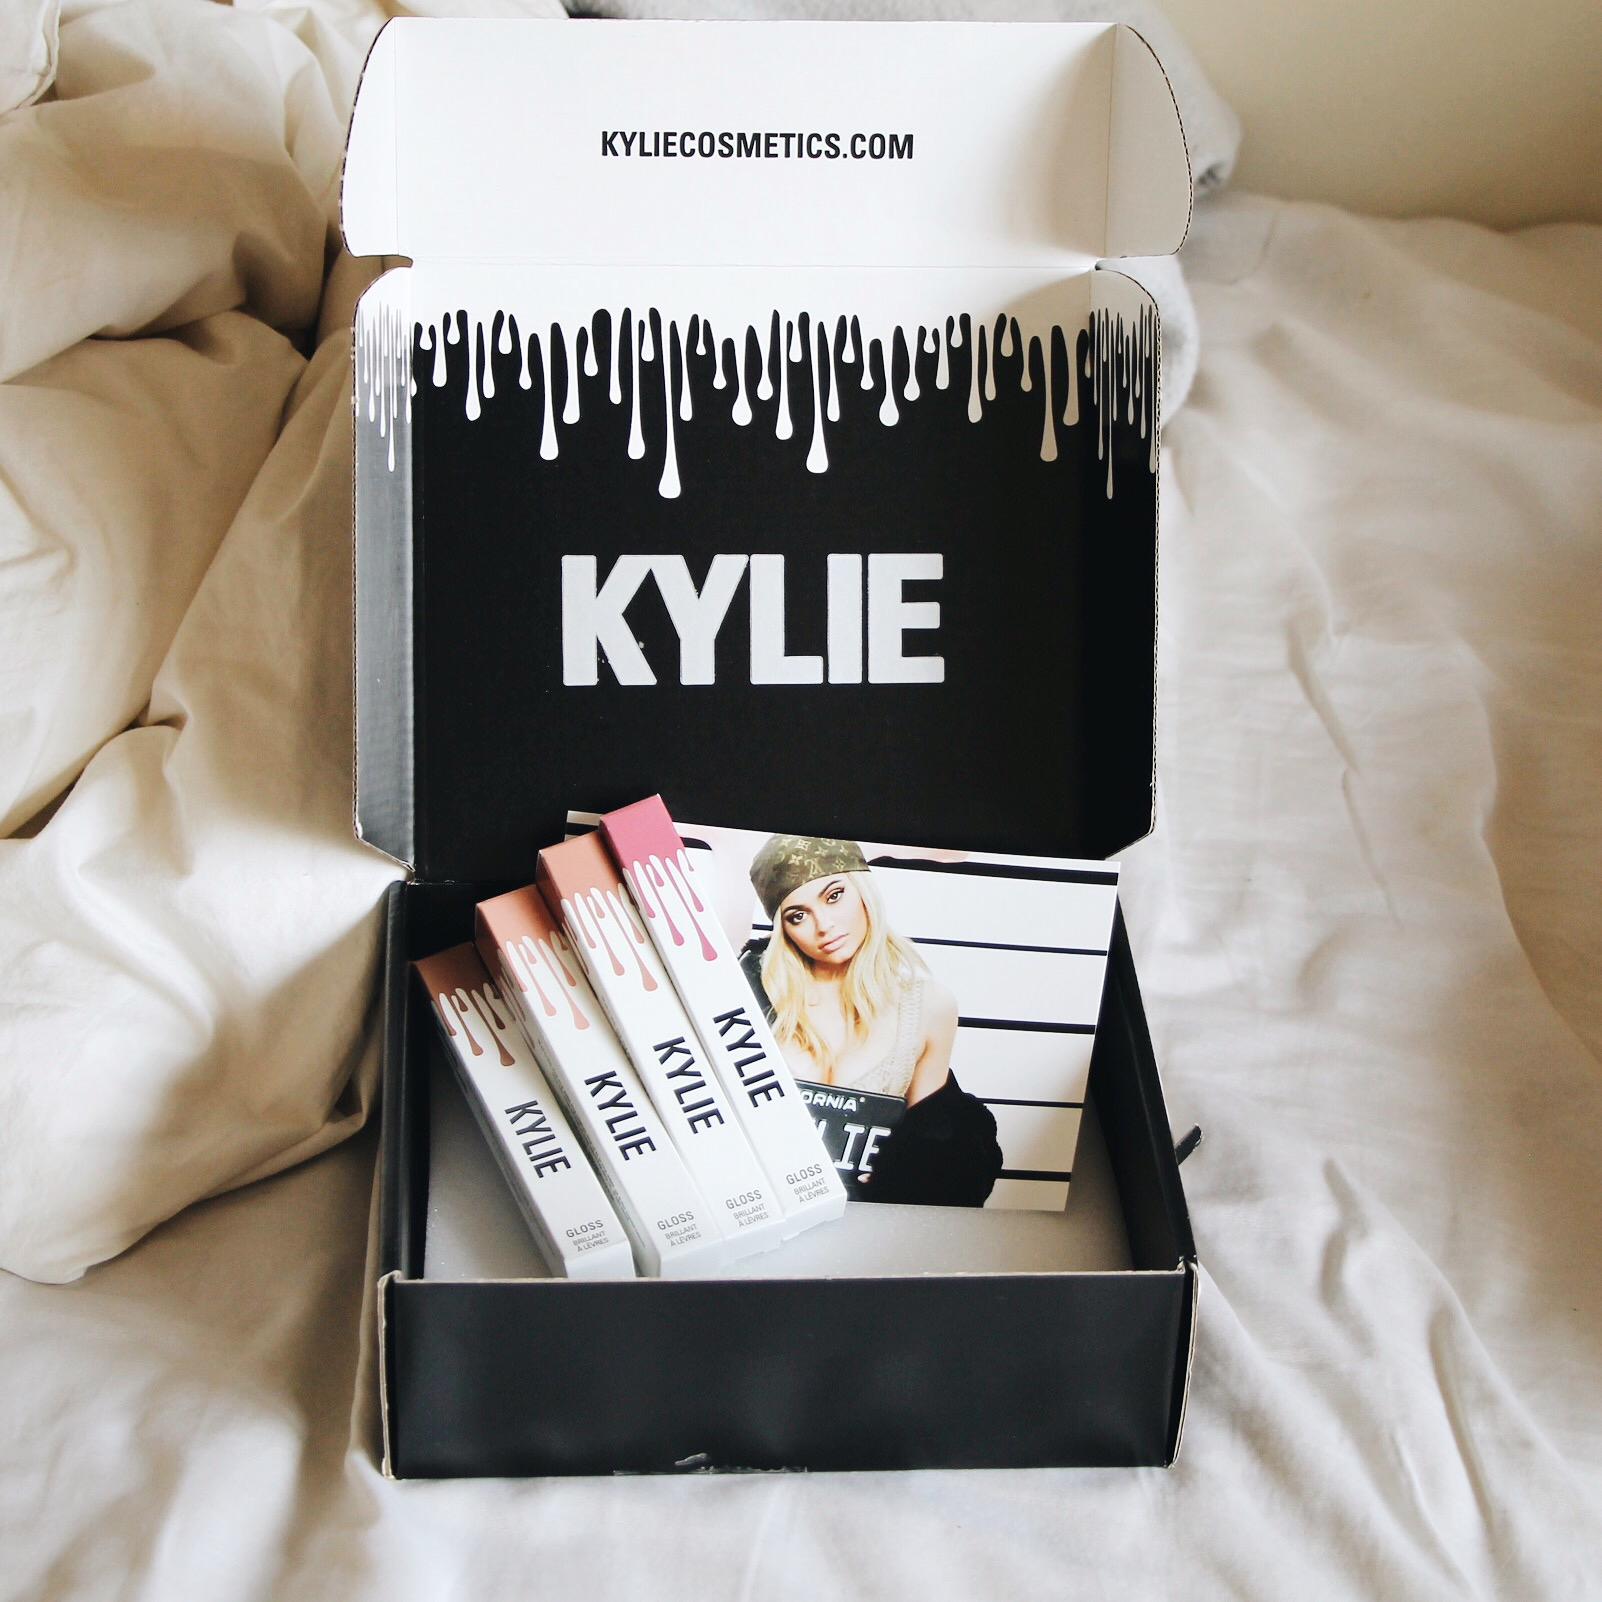 Kylie Glosses Review + Swatches: Koko K, Candy K, Posie K, Exposed K, Kylie Cosmetics, Kylie Lipkit, Kylie Cosmetics Giveaway, Kylie Lipkit Giveaway, Kylie Gloss Giveaway, Kylie Jenner, Kylie Glosses Review, Kylie Glosses Swatch